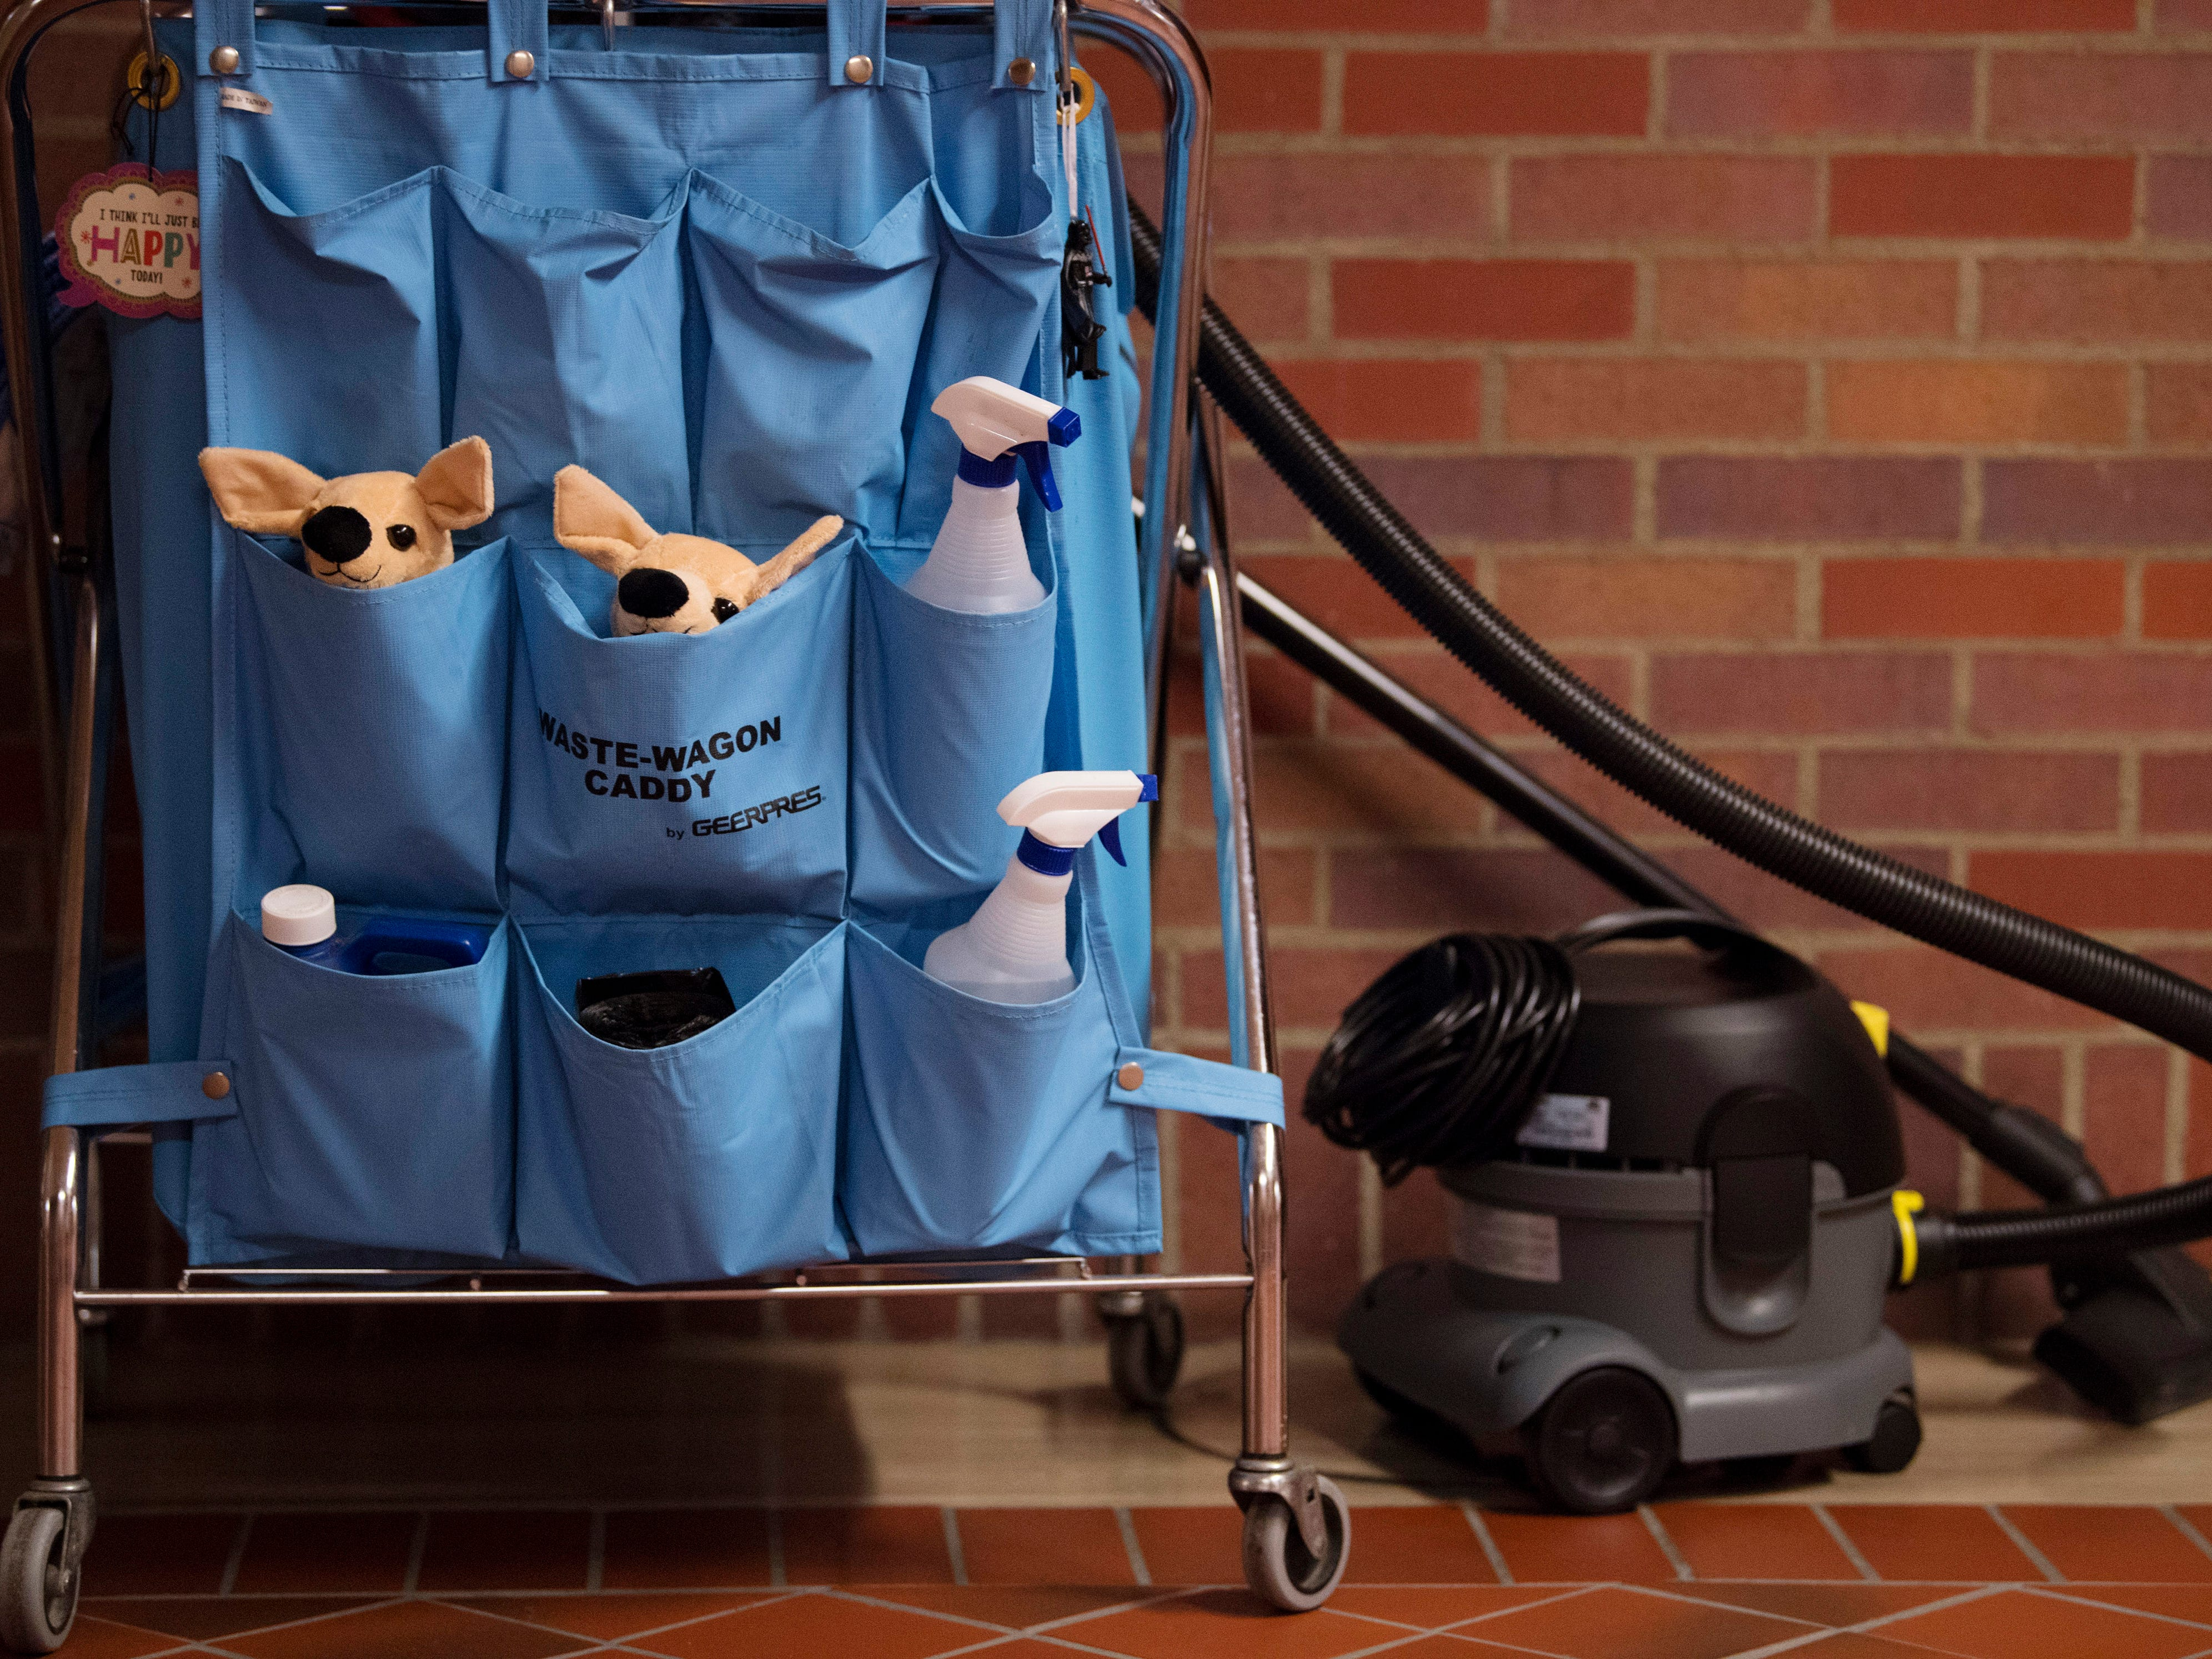 A pair of joeys take up residence in a custodial caddy at the Vanderburgh County Civic Center Monday afternoon.